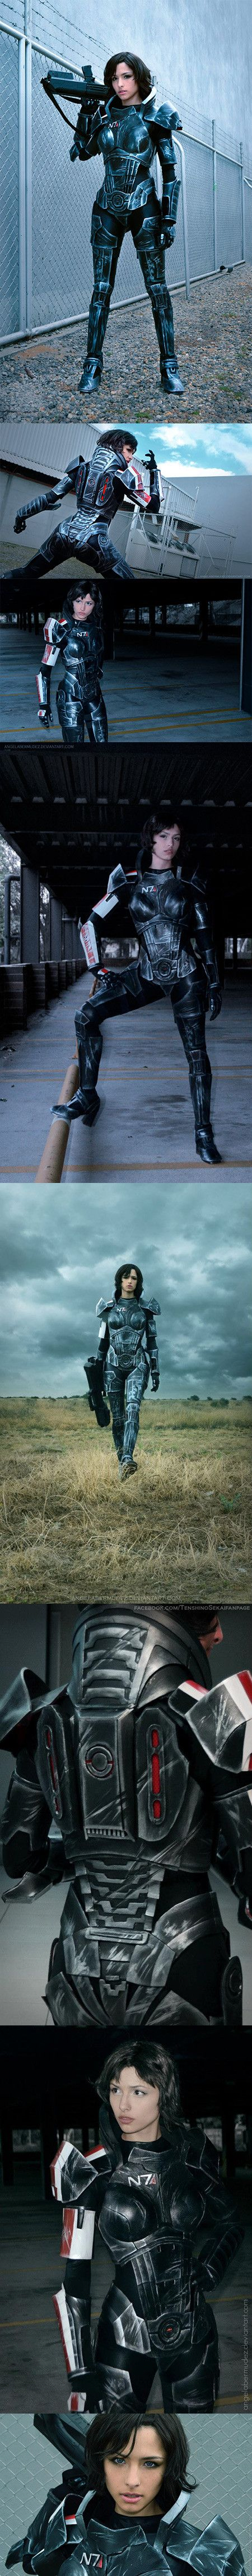 Take a moment and raise your pulse rifles for this incredible Mass Effect N7 'Fem Shepard' cosplay by ANGELA BERMUDEZ. The entire suit and make up were done by herself and, I have to admit she looks badassingly spectacular.